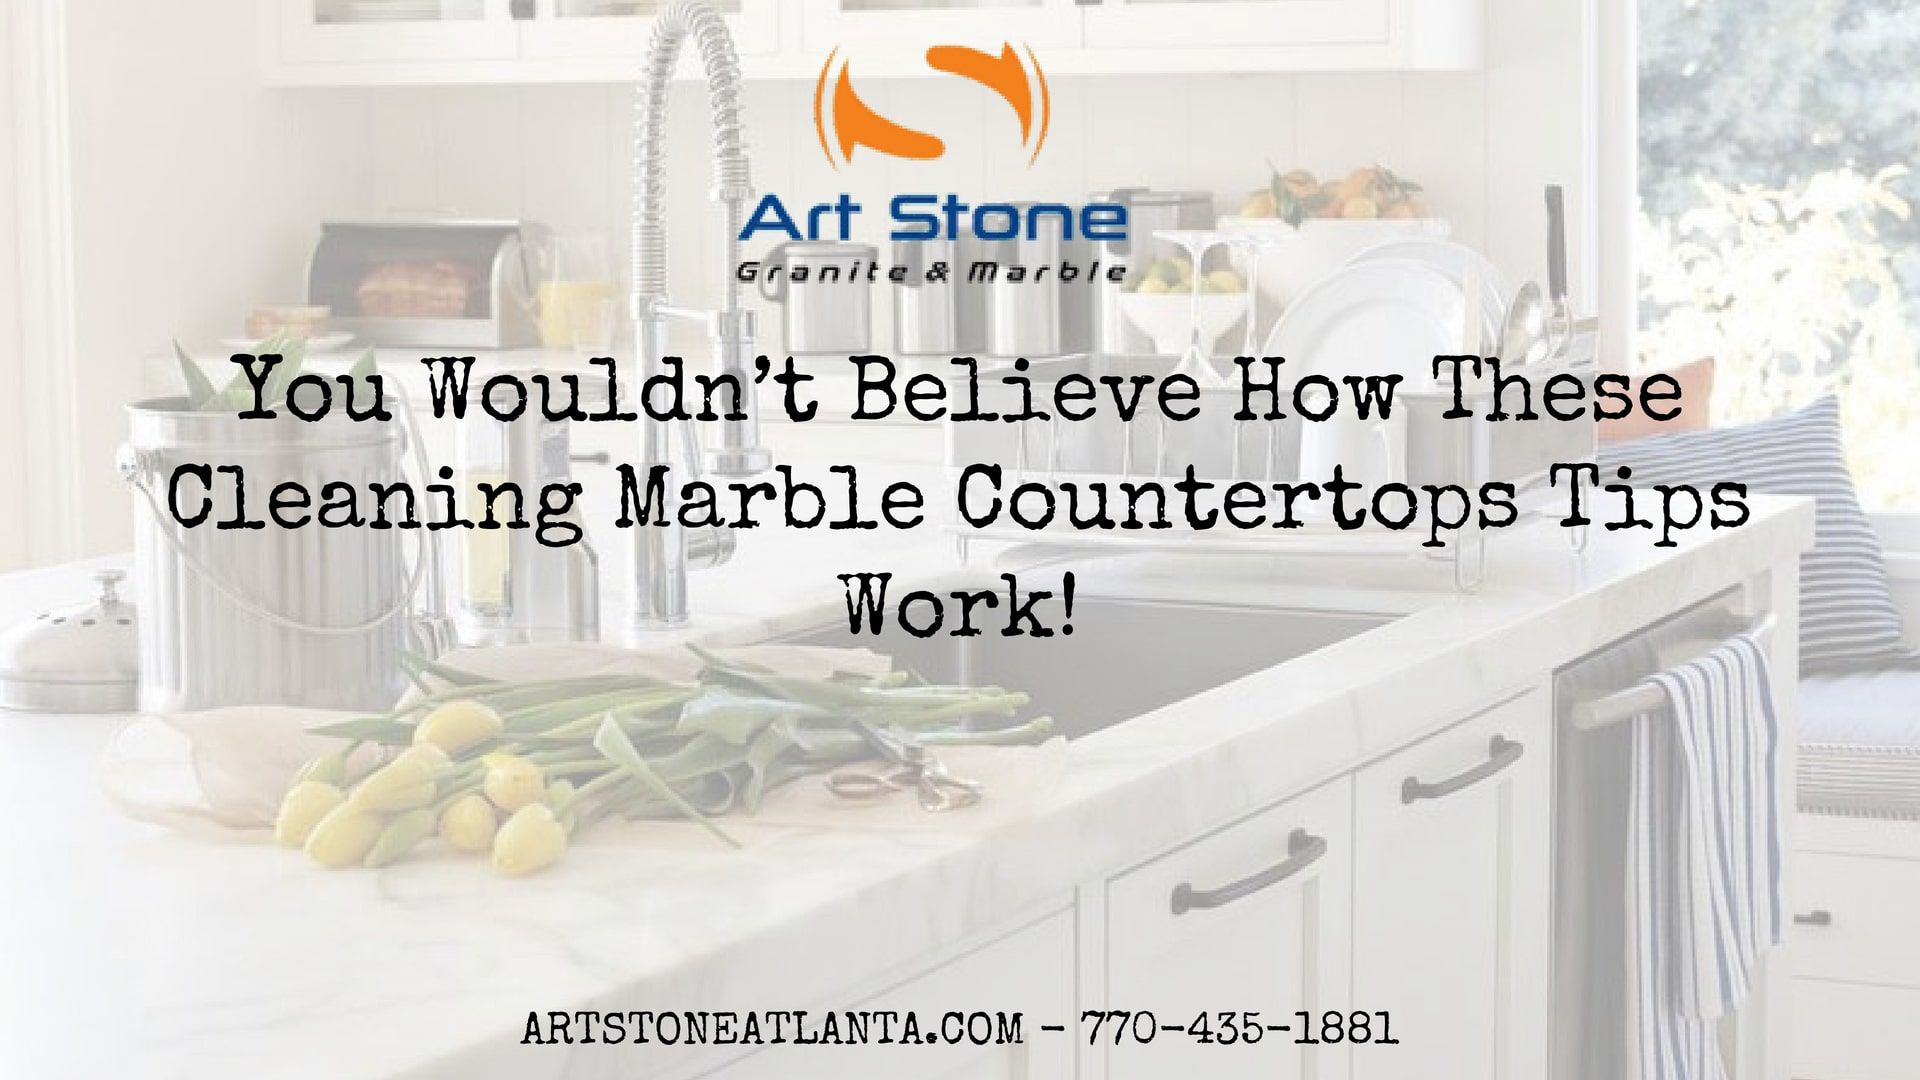 You Wouldn T Believe How These Cleaning Marble Countertops Tips Work Cleaning Marble Countertops Marble Countertops Cleaning Marble